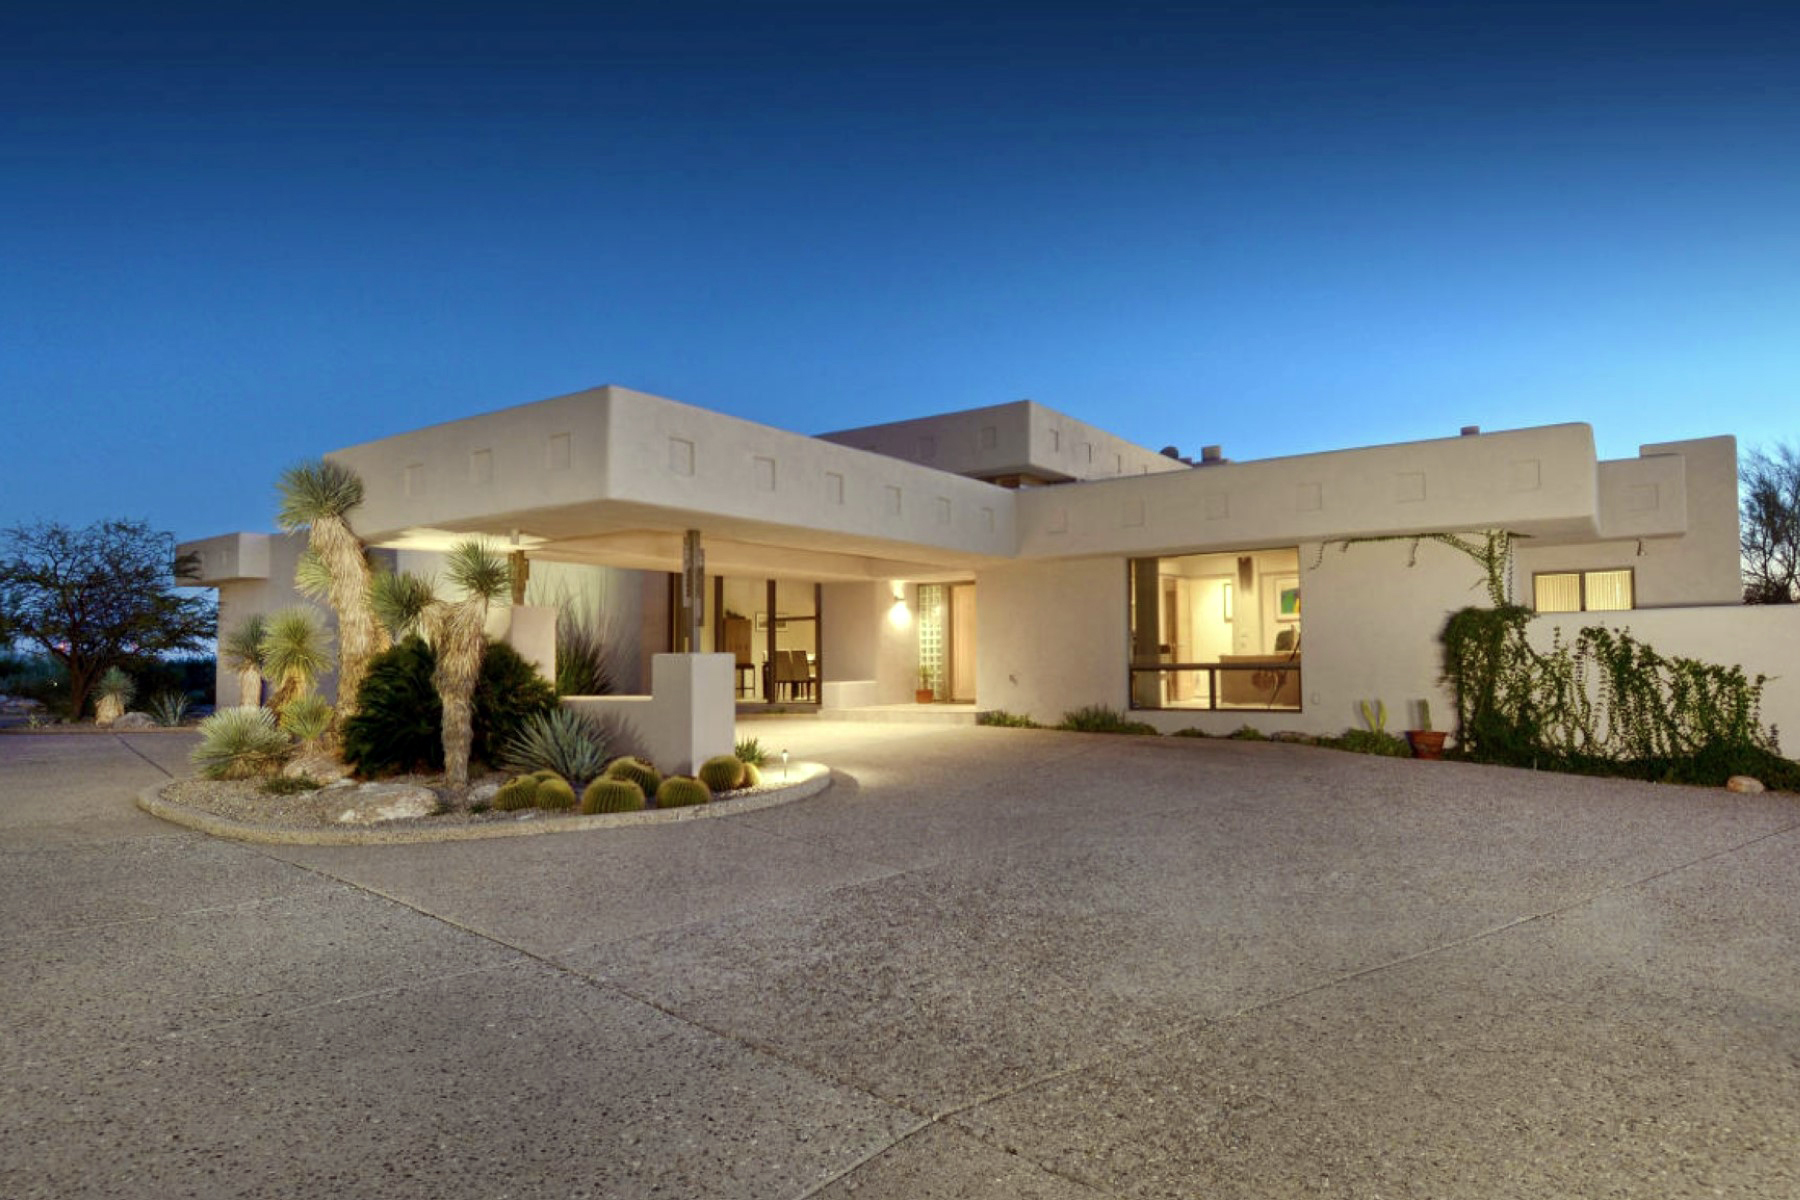 Single Family Home for Sale at Ultra-Custom David Tyson Designed Ridgetop Residence with Superior Views 5783 N Placita Juan Palisano Tucson, Arizona 85718 United States